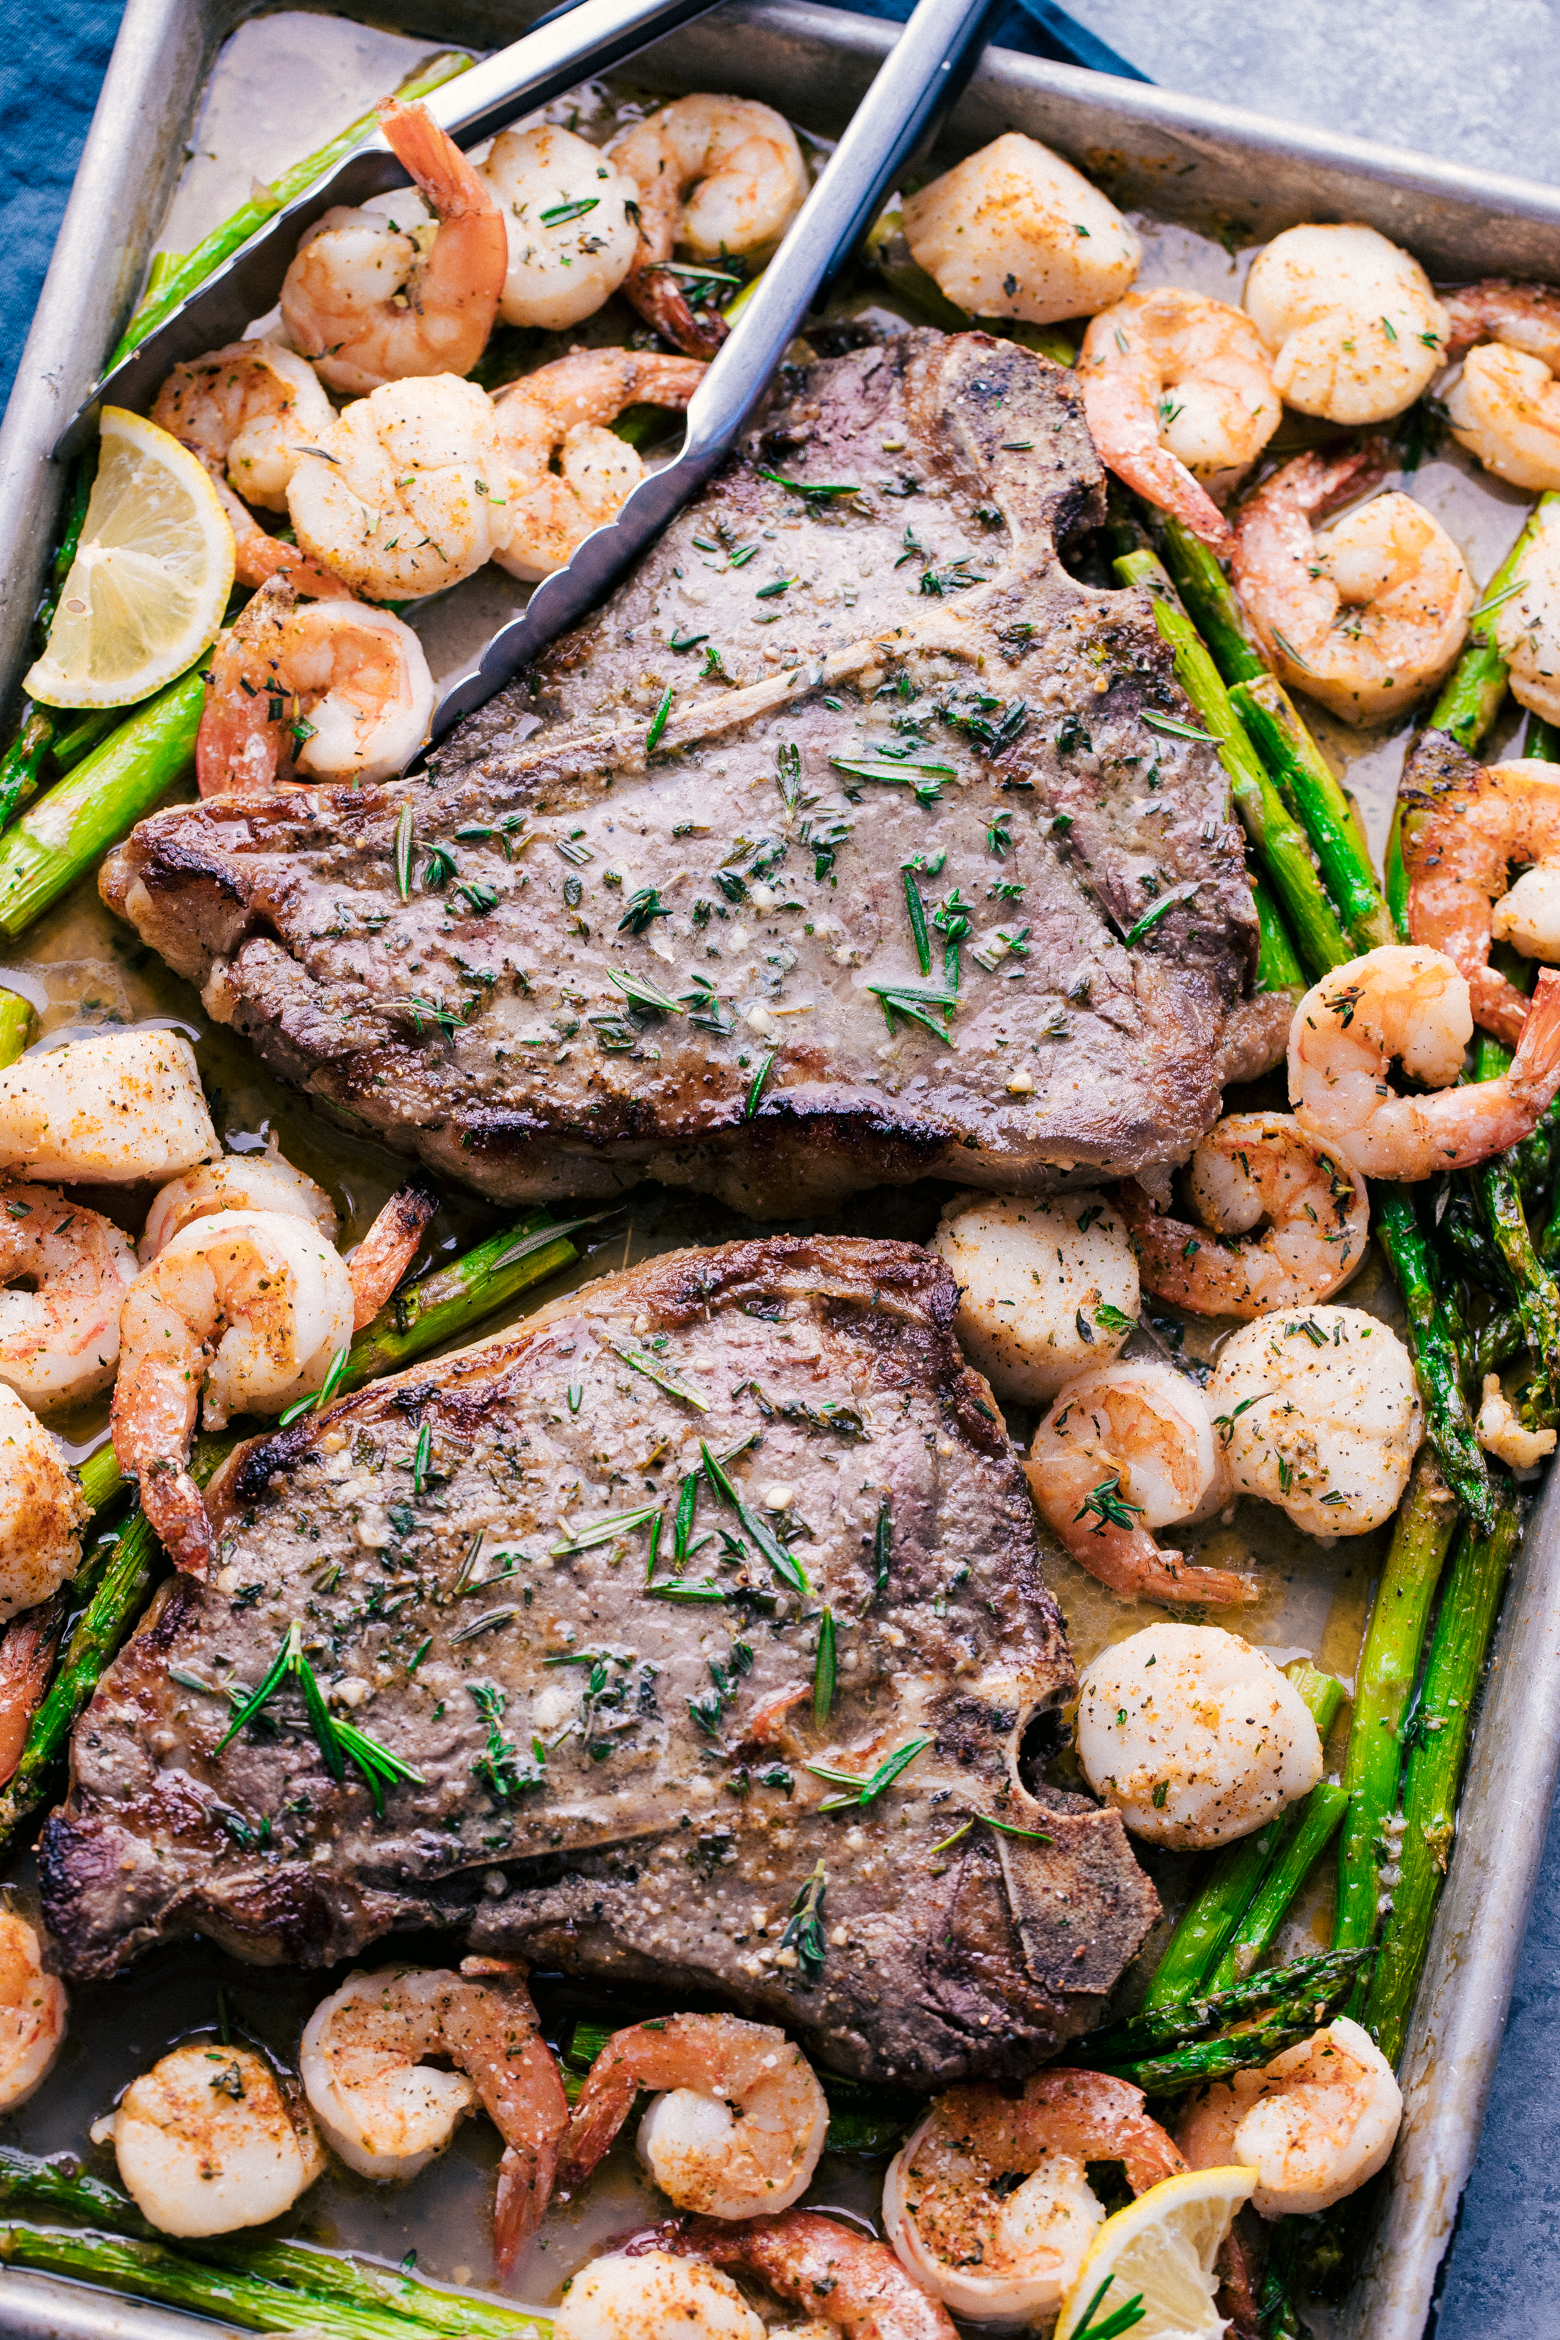 Steak, shrimp, and scallop surf and turf on a sheet pan served with asparagus by The Food Cafe